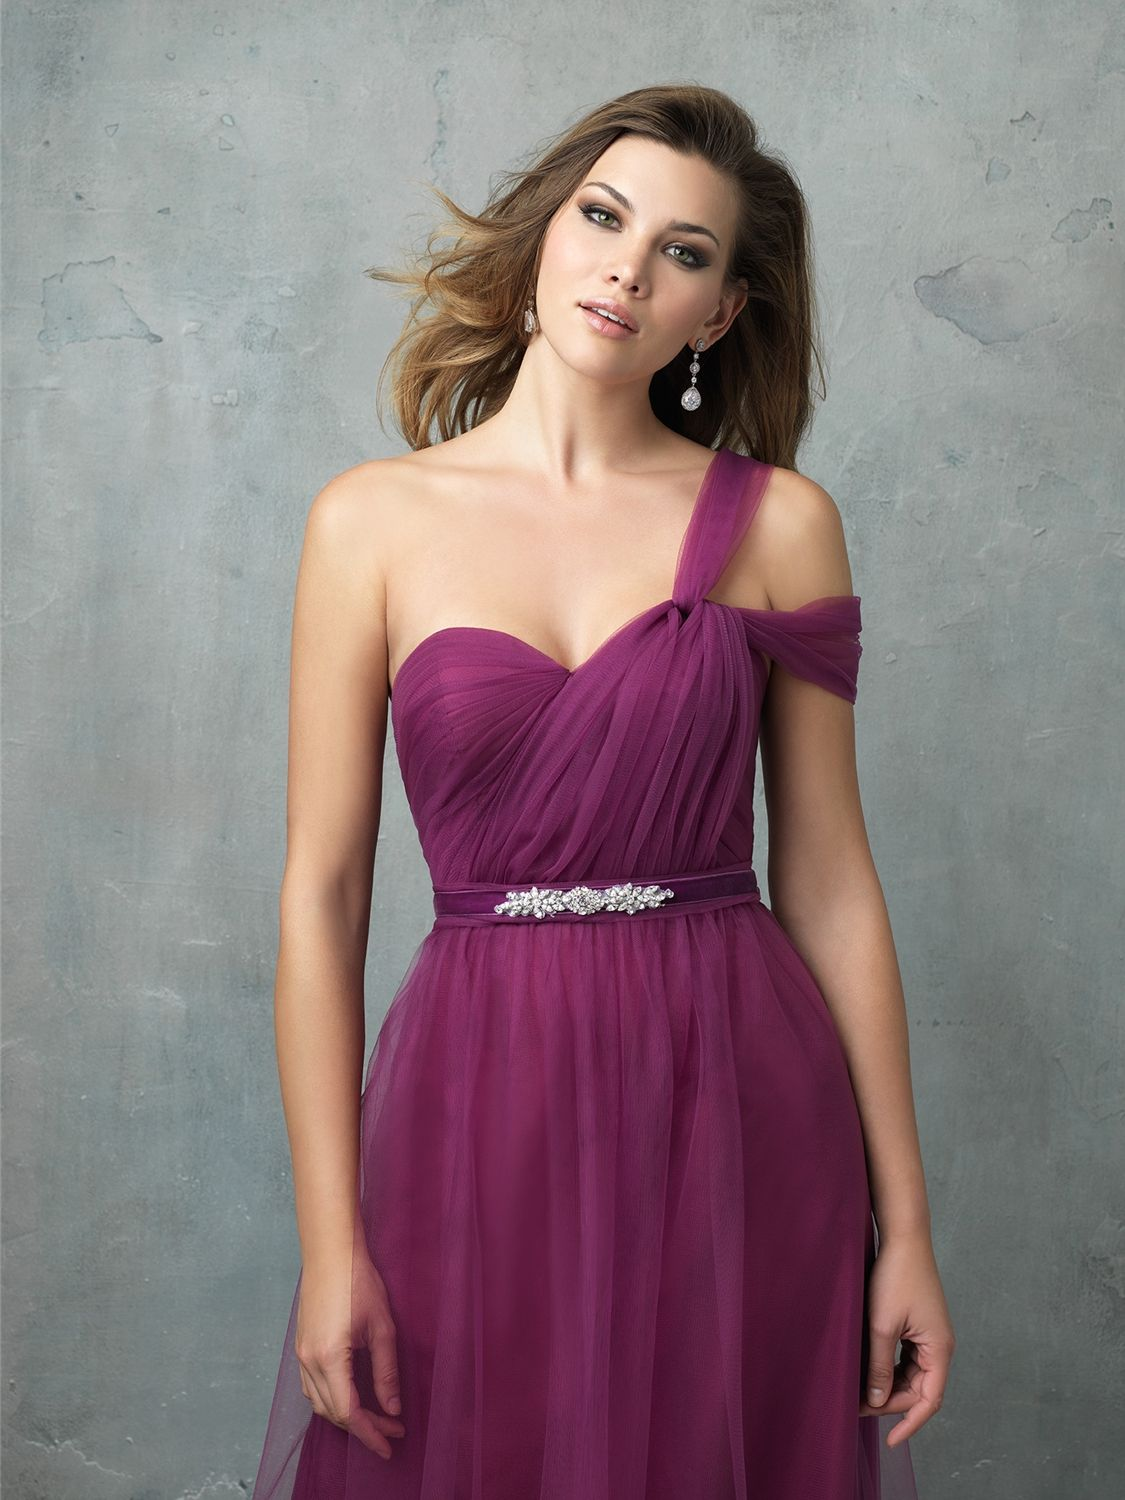 Allure bridesmaids bridesmaid dress style 1431 house of brides allure bridesmaids bridesmaid dress style 1431 house of brides ombrellifo Choice Image